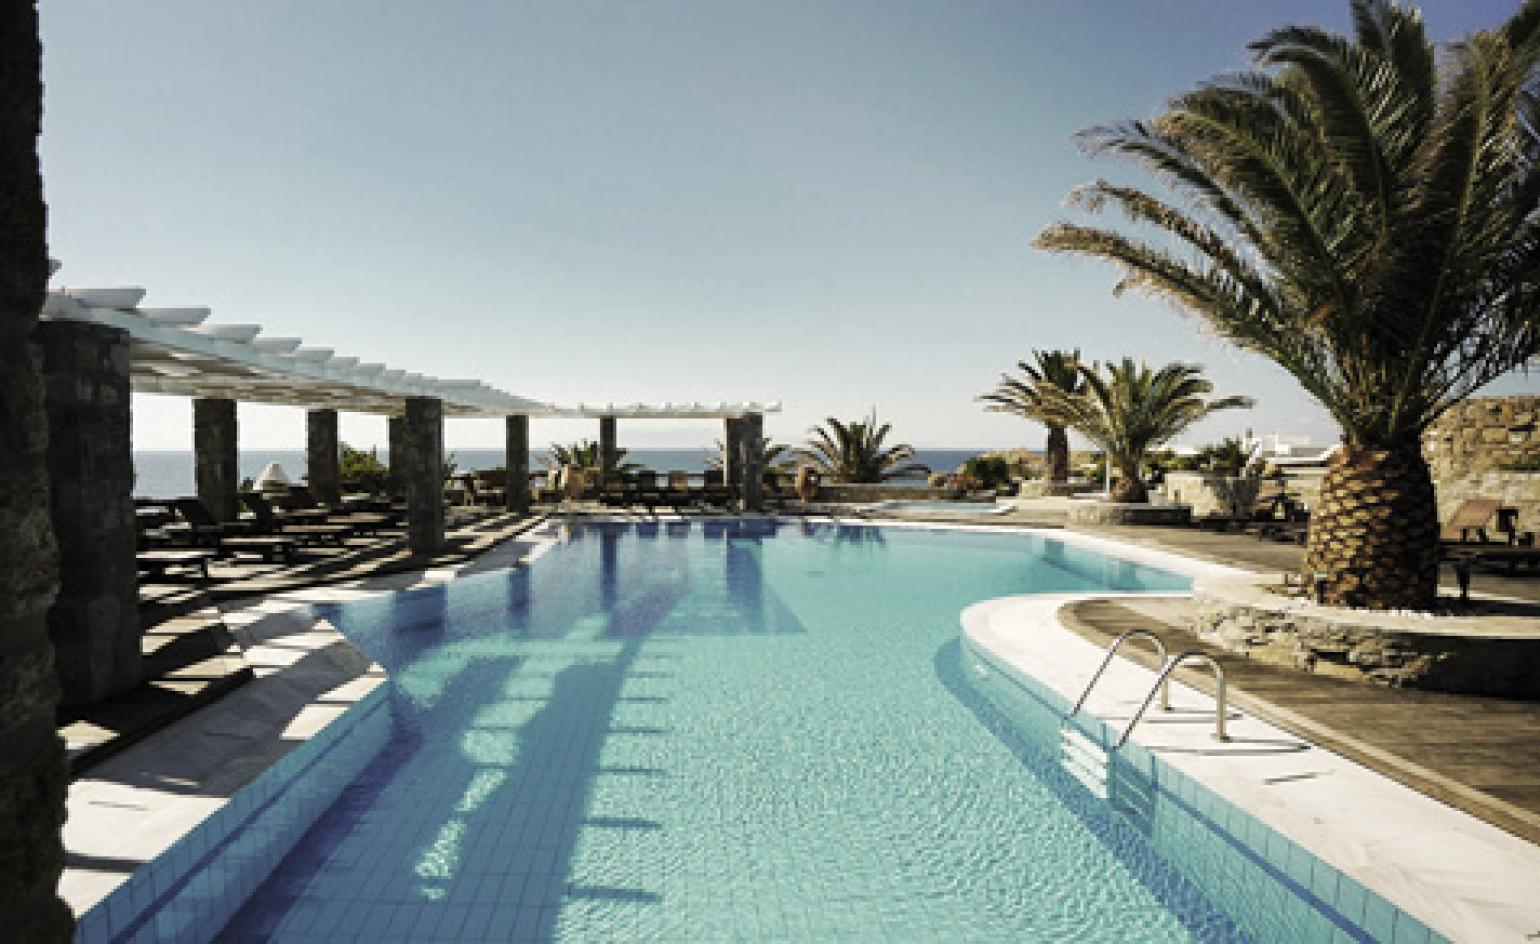 Design hotels launches its second pop up hotel in mykonos for Design hotel greece